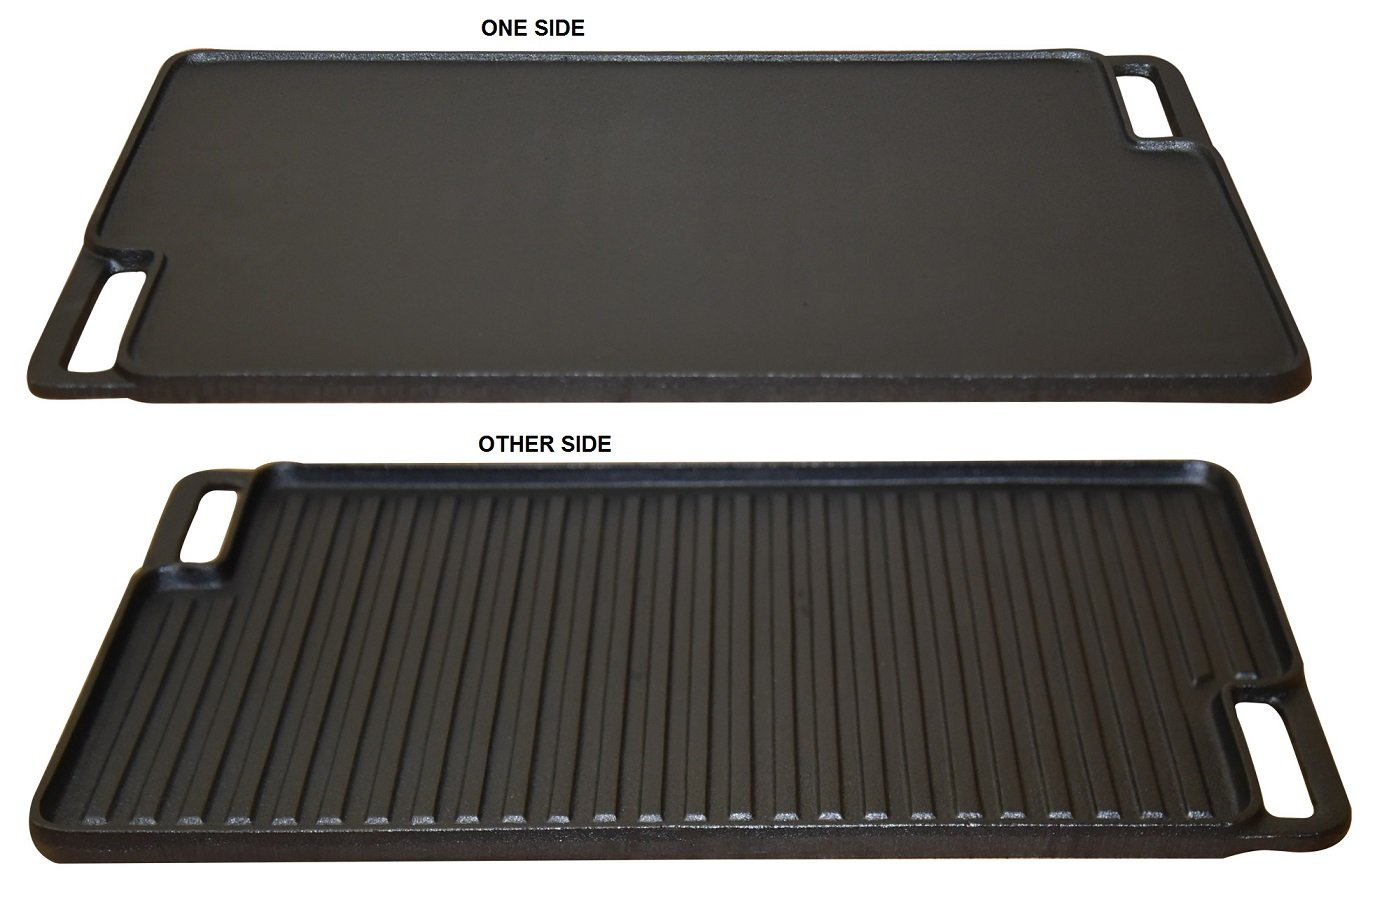 Amazon.com: Wees Beyond Seasoned Reversible 5304-SG Pre-Se. Griddle/Grill Plate, Black: Kitchen & Dining